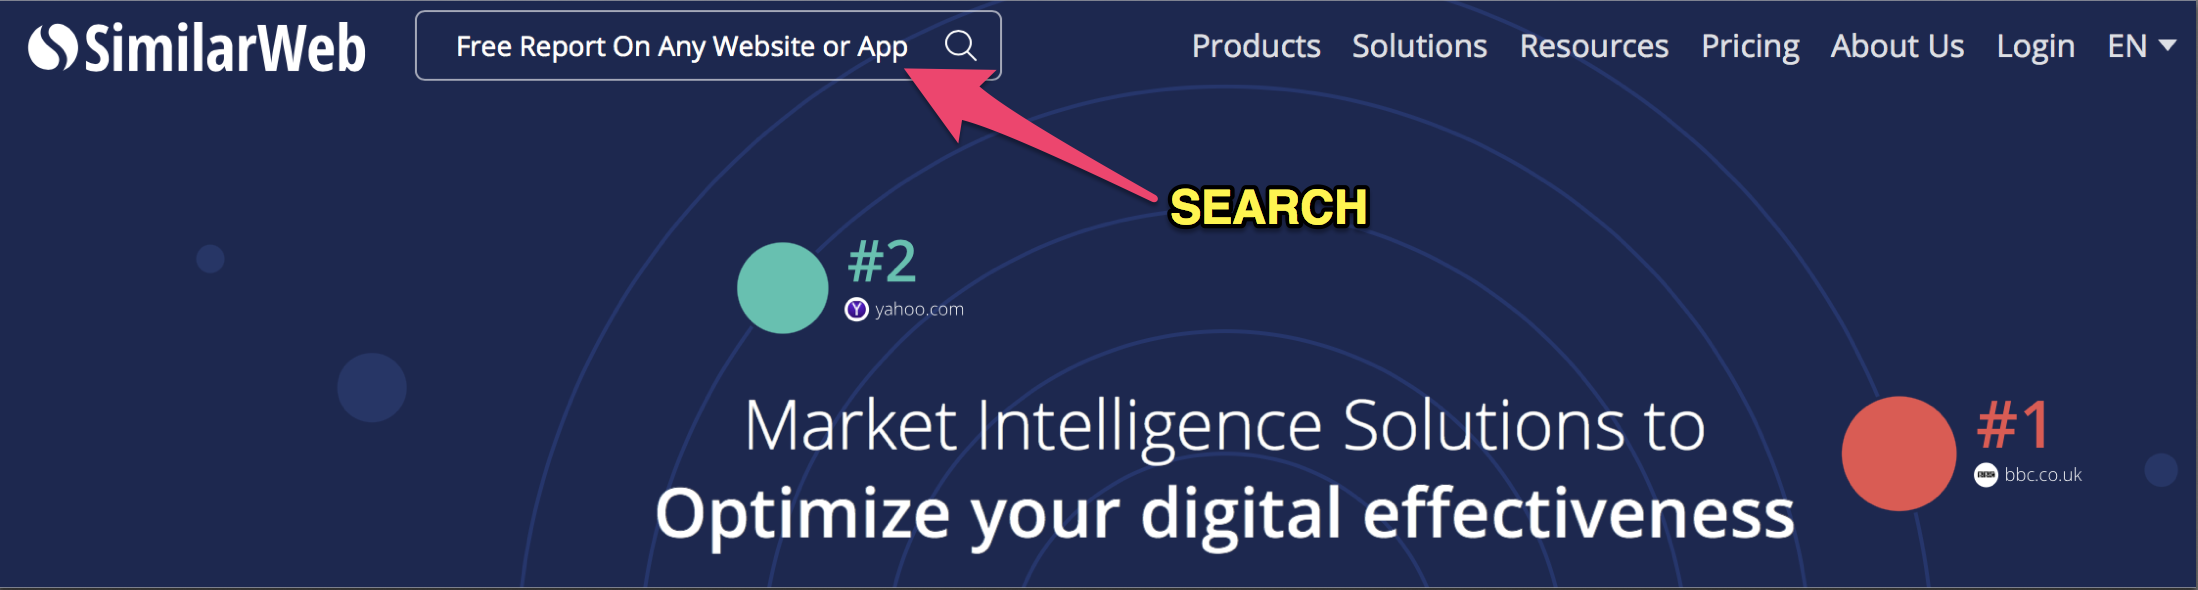 similarweb free tool for marketers